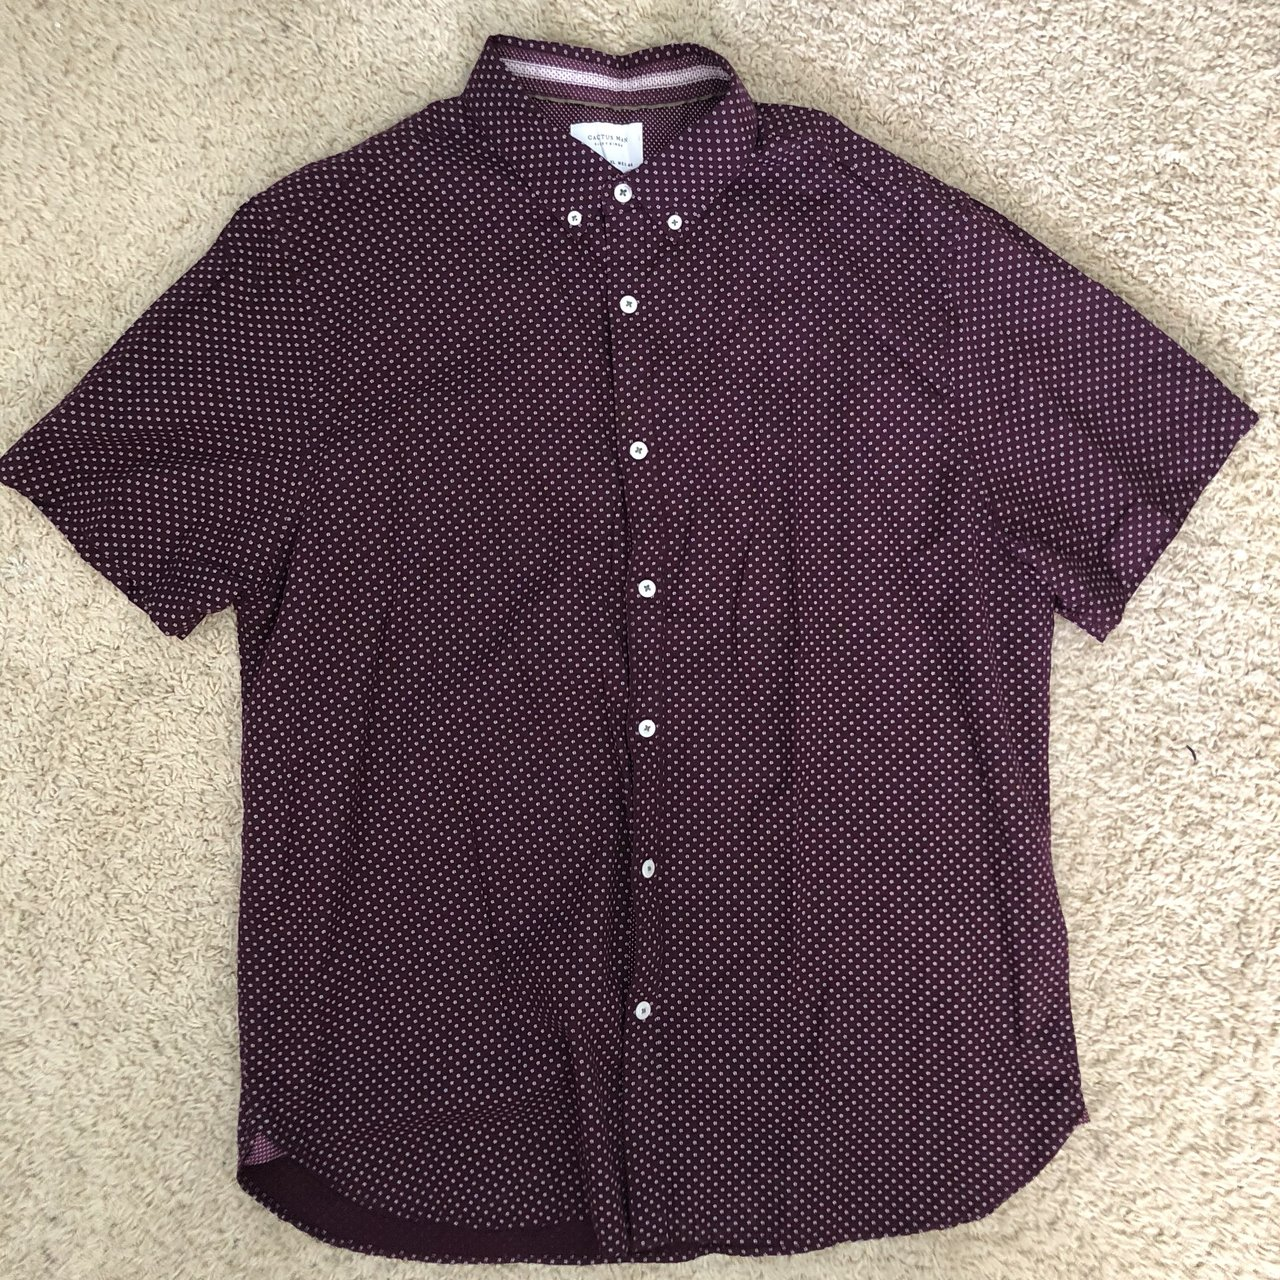 Cactus Man Brand Button Up Shirt Size Xl Very Good Depop